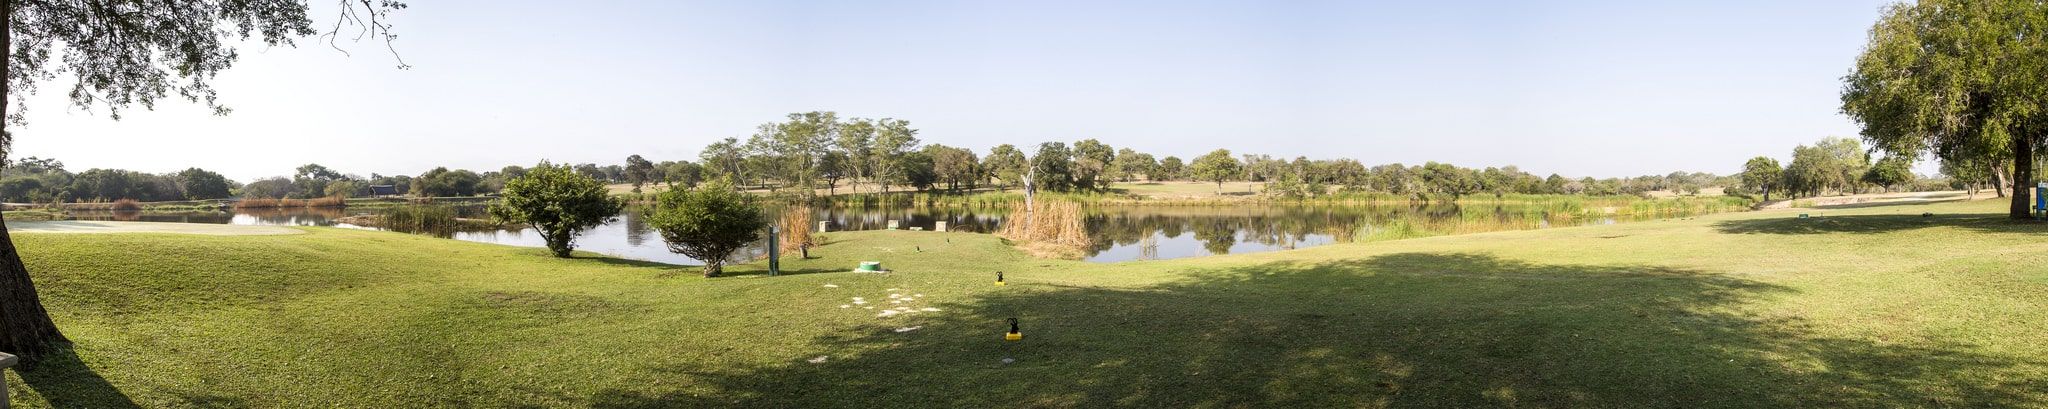 Skukuza golf course panorama, sheldrickfalls